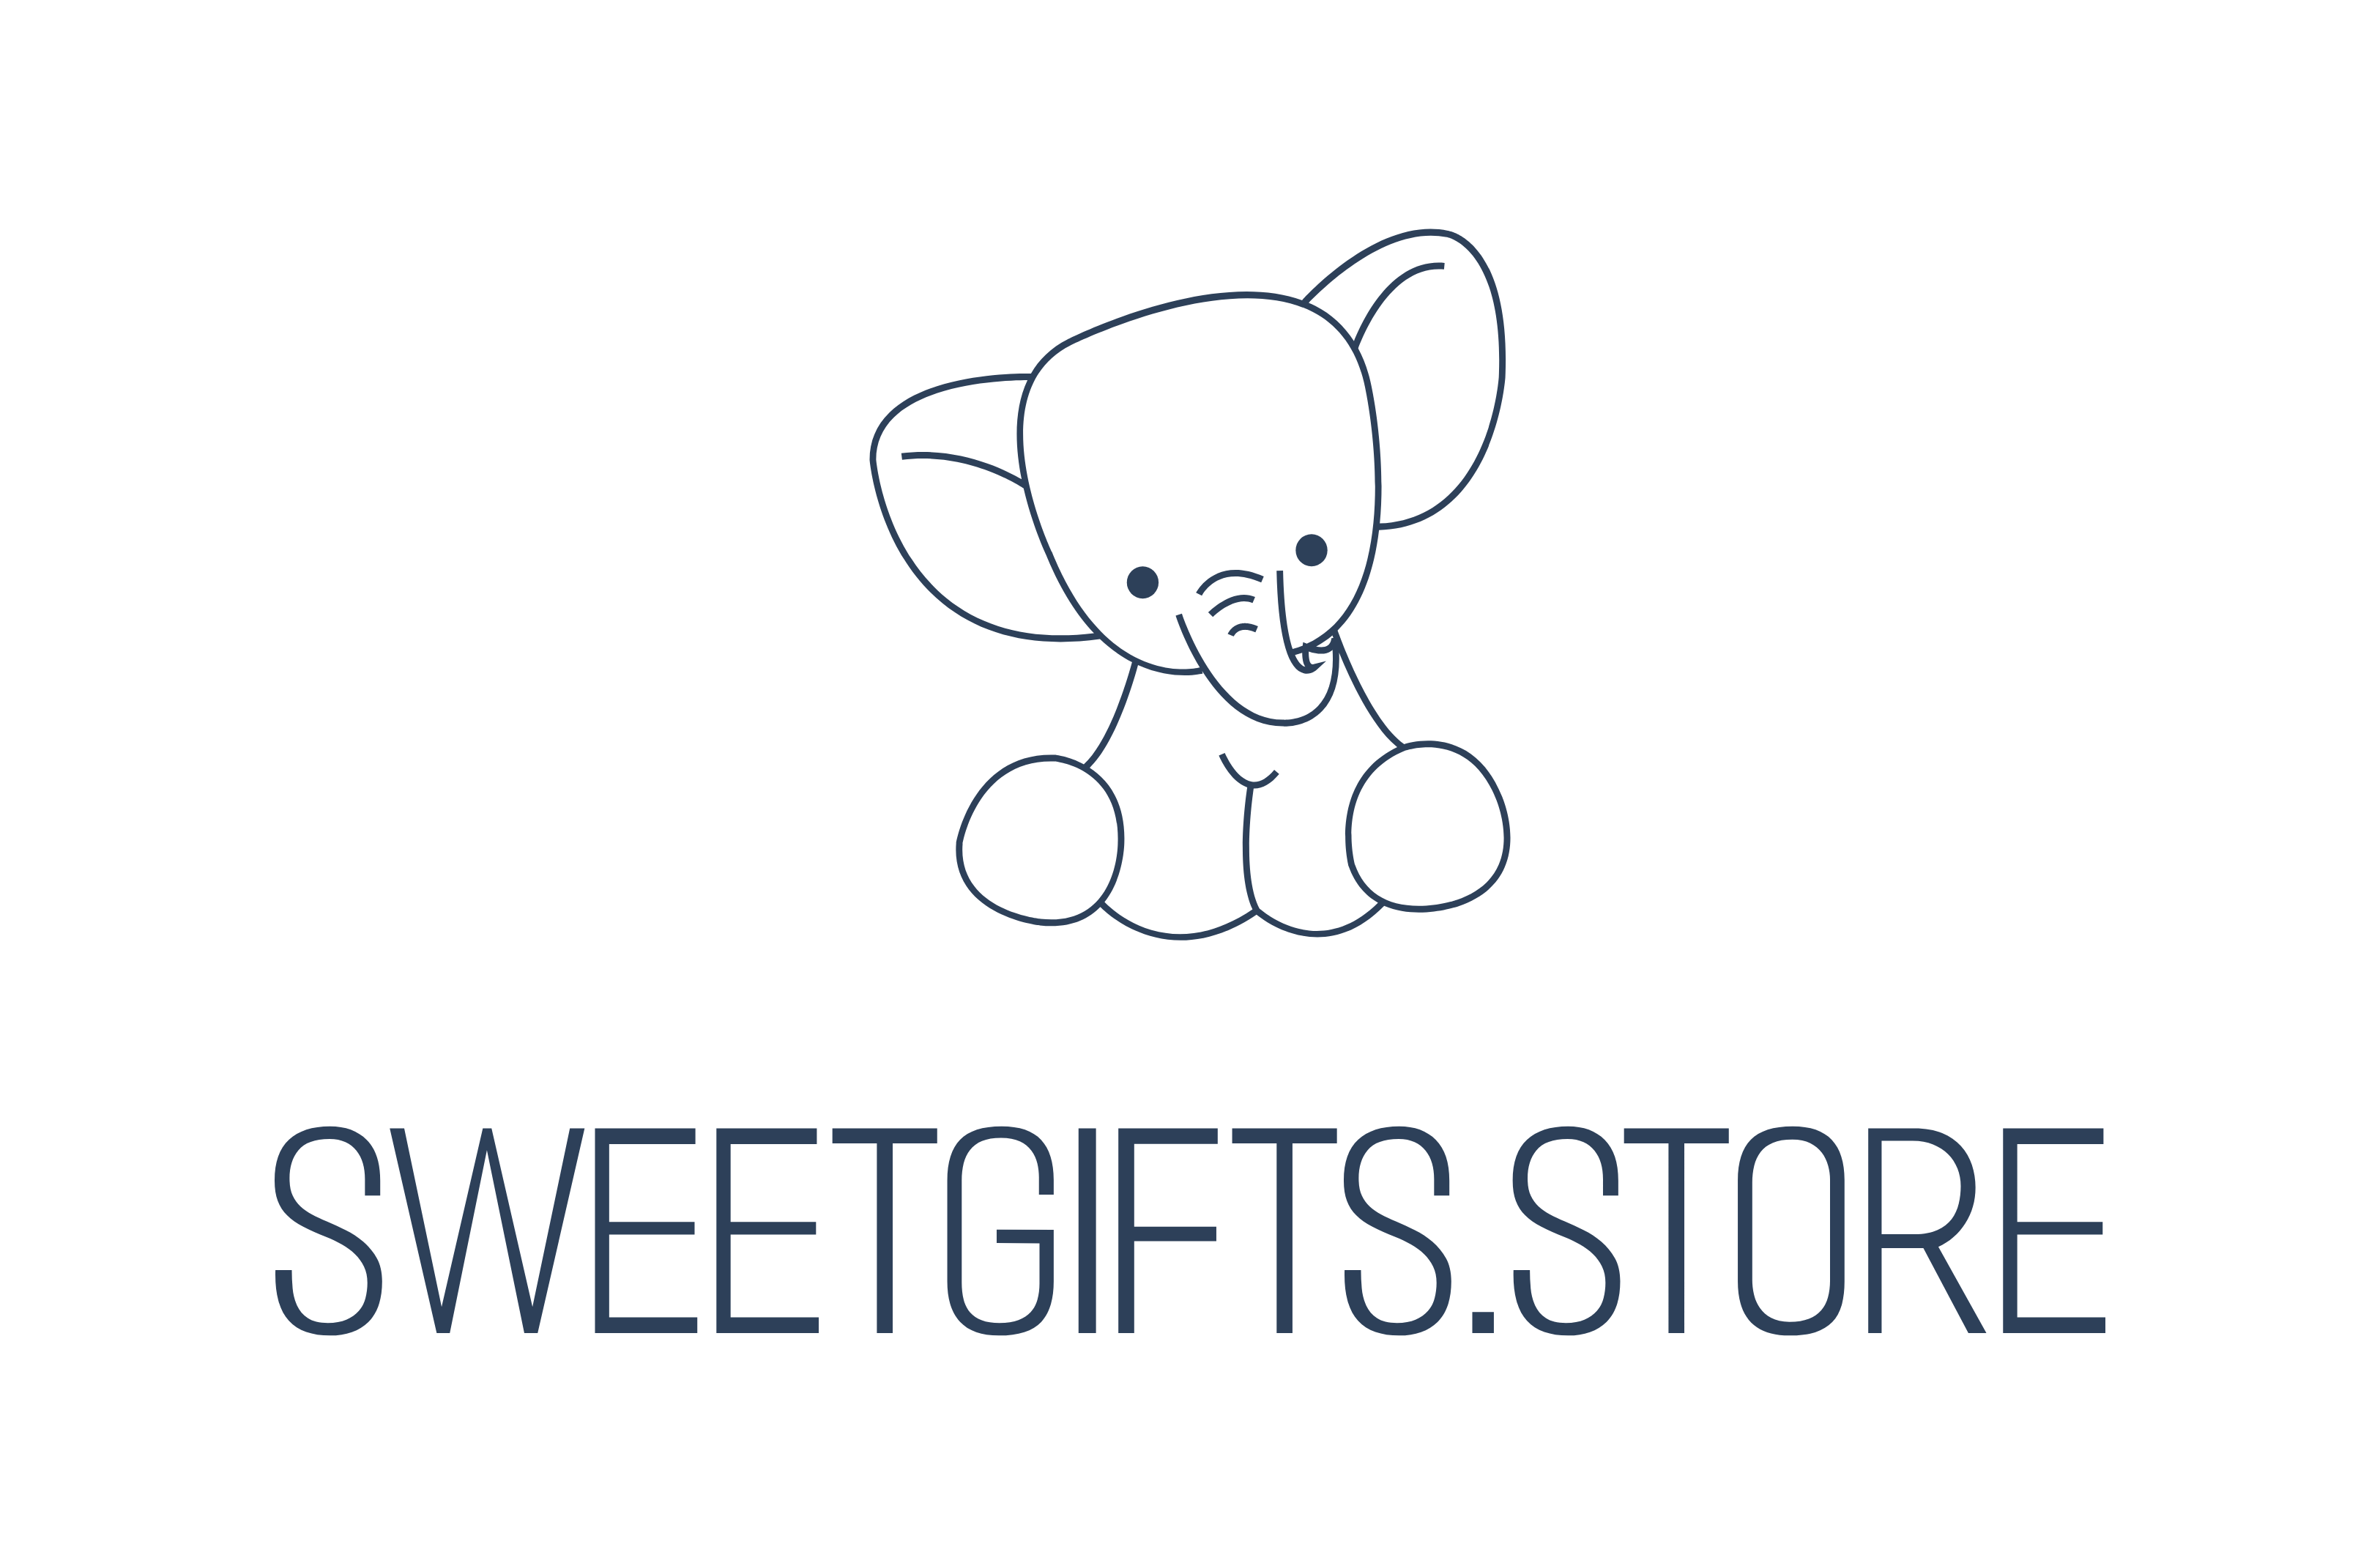 Sweet Gifts Store